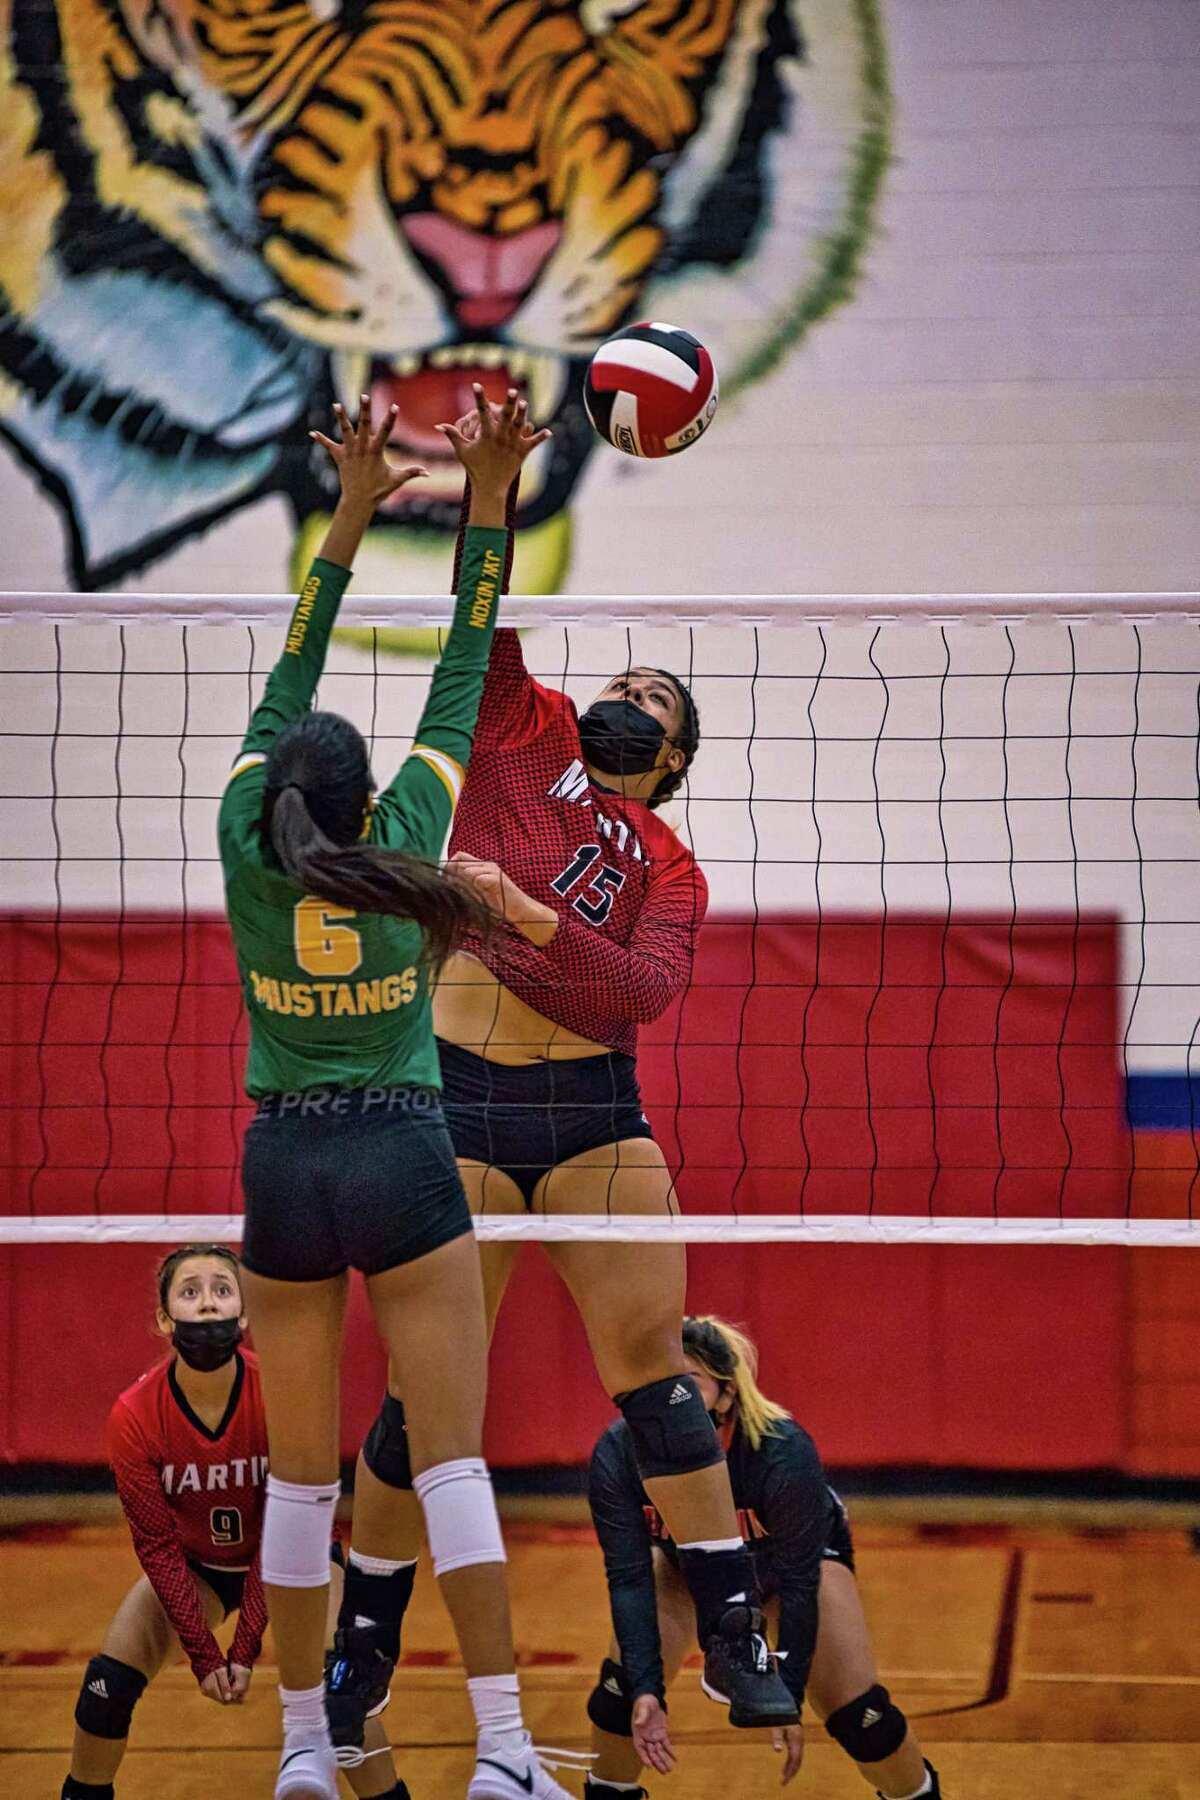 Melanie Duron had a triple-double with 15 kills, 19 digs and 10 blocks Tuesday leading Martin to a 3-0 (25-23, 25-20, 25-18) win at home over rival Nixon.